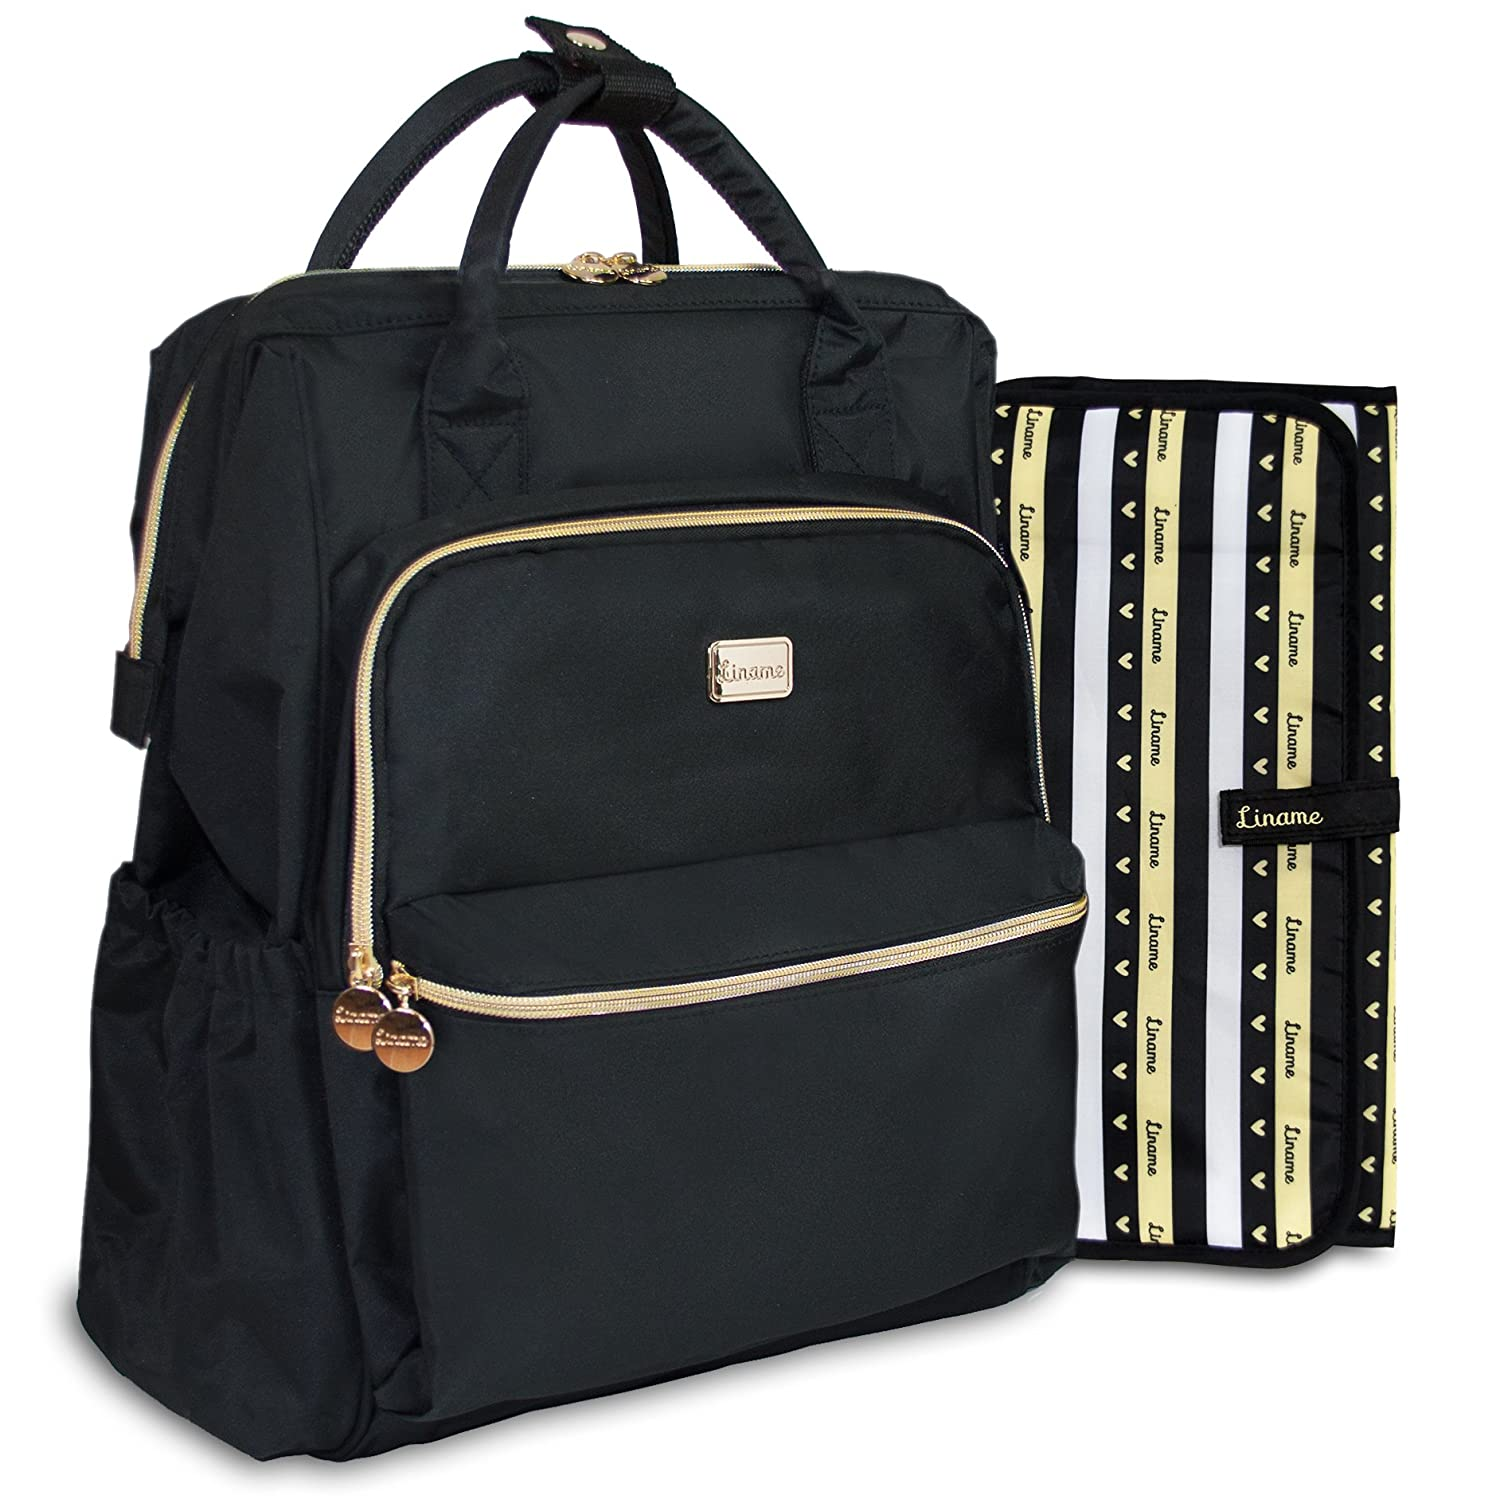 **LAUNCH SPECIAL OFFER** - Premium Changing Bag Backpack by Liname - Extra-Wide Zip Opening, Large Capacity & Stylish Design - Includes BONUS Buggy Straps & WATERPROOF Changing Pad - Easy to Clean and Looks Great black007